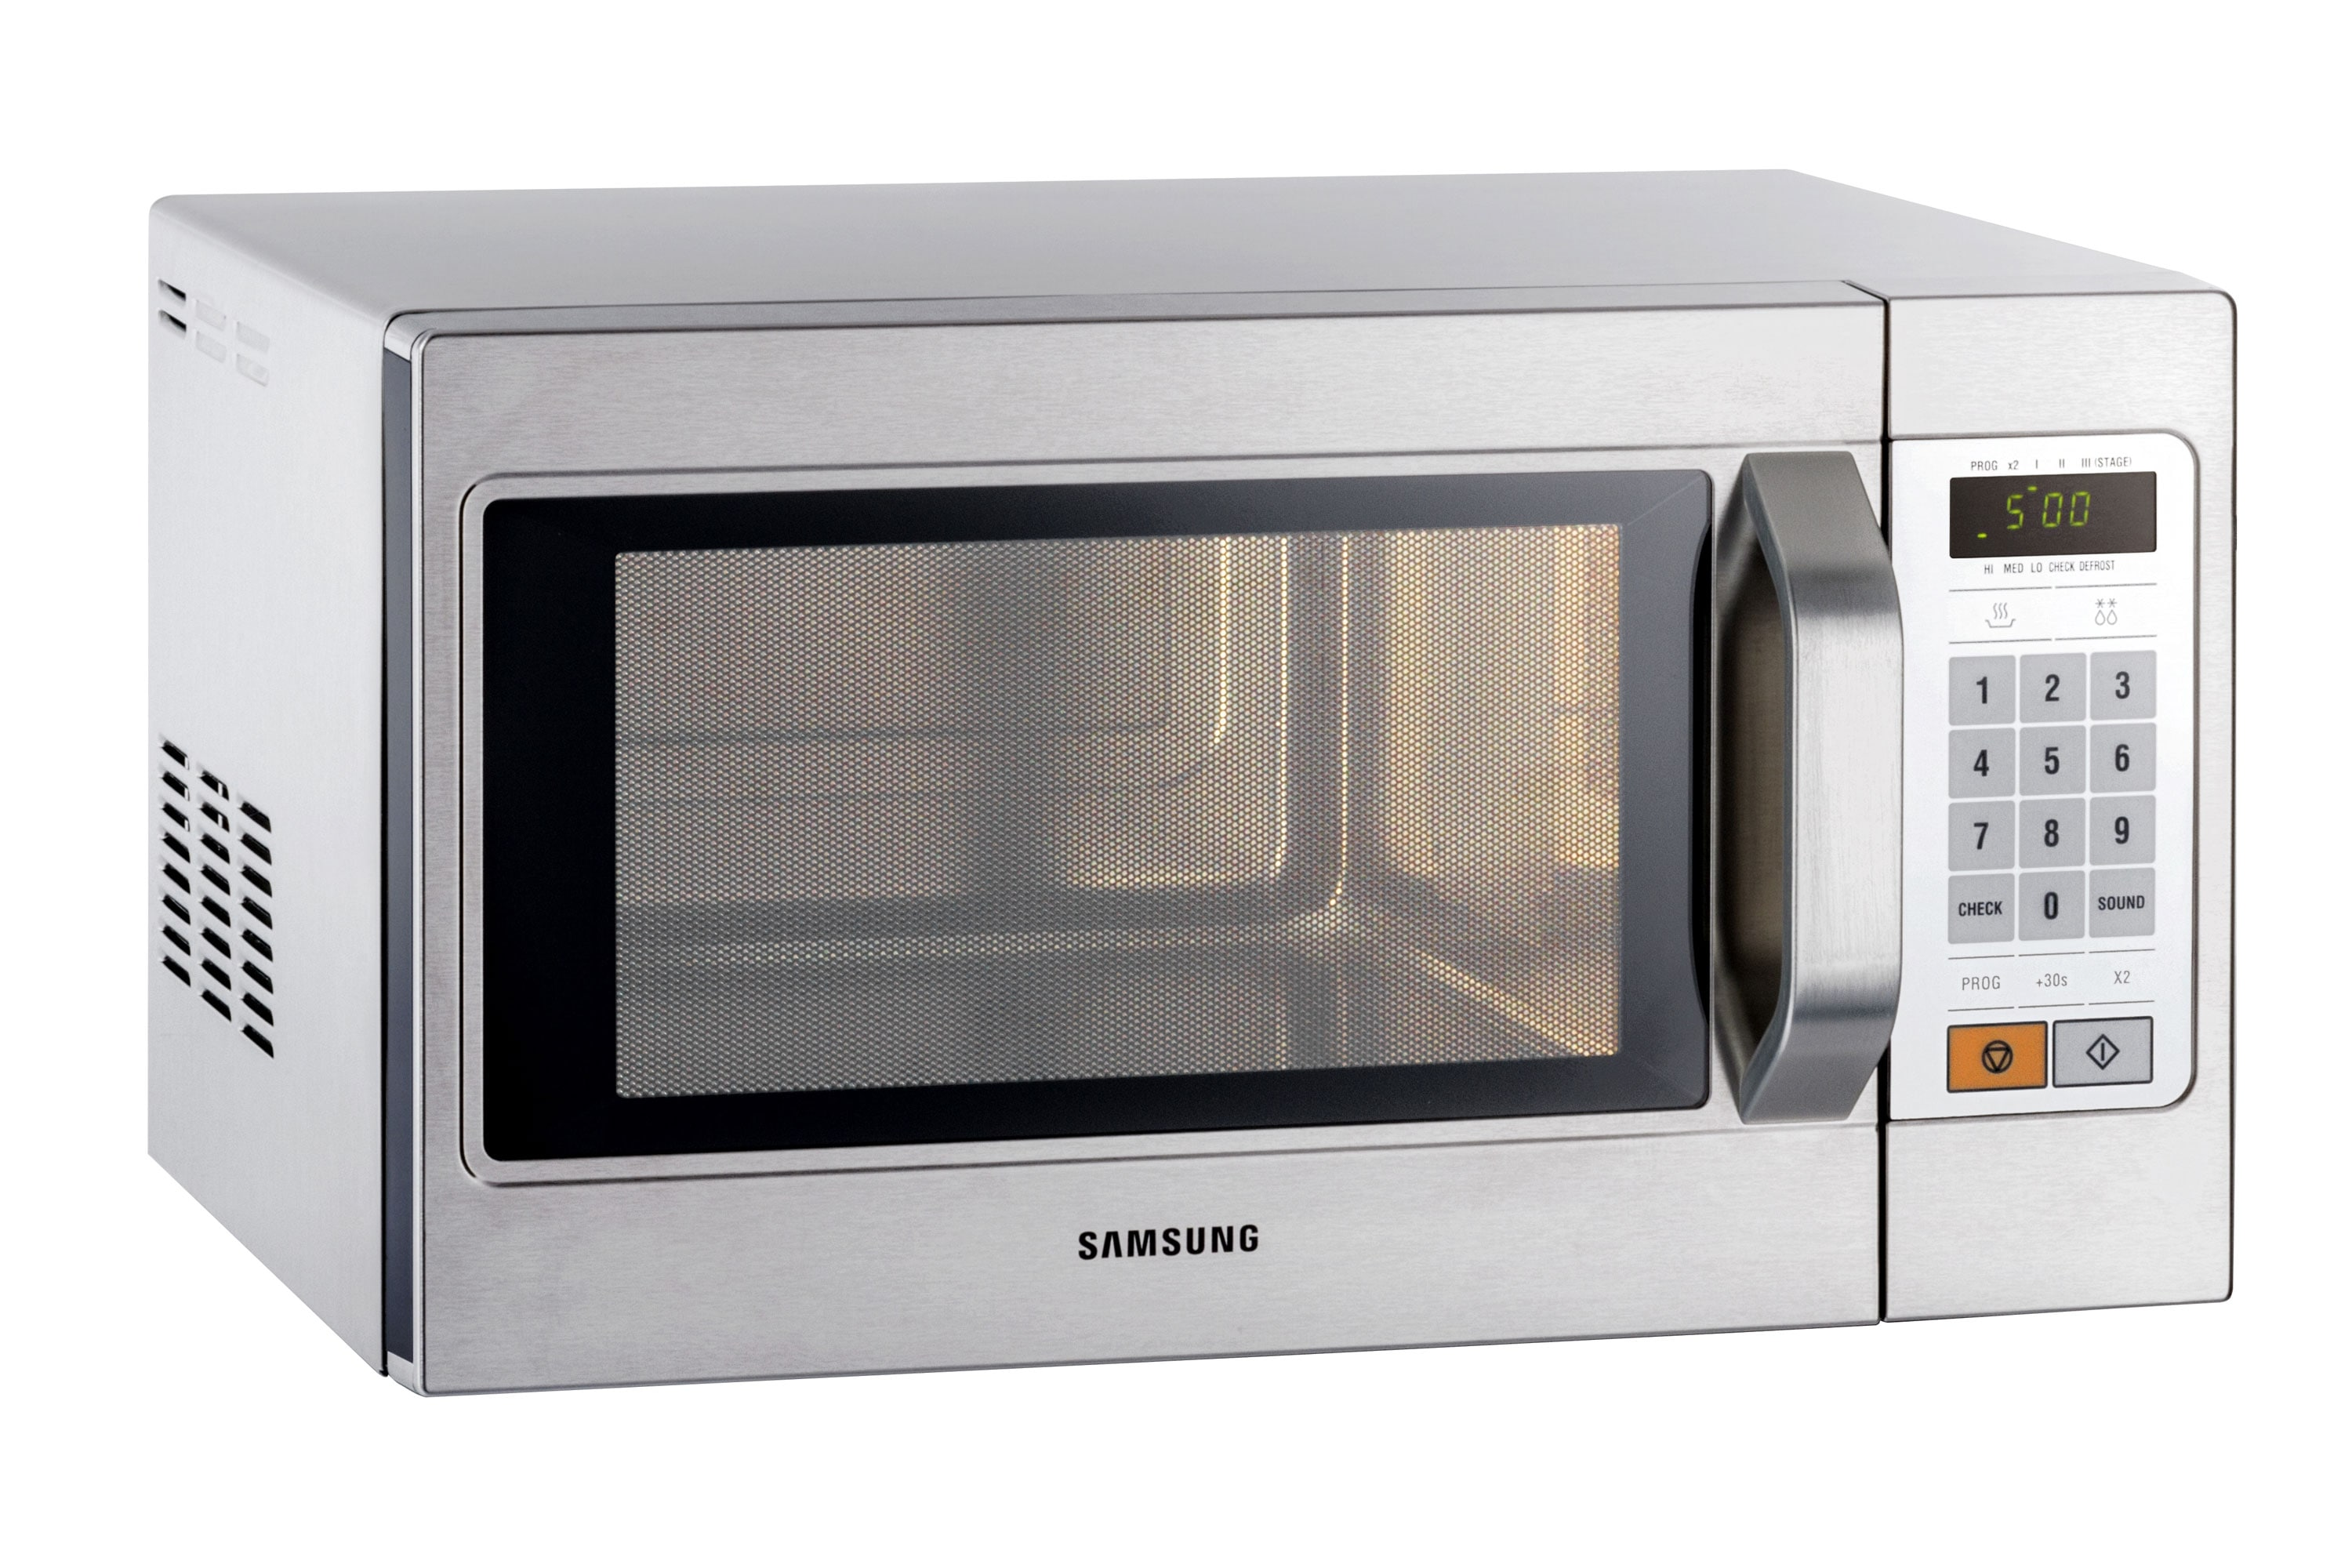 best small microwave cm1089 microwave oven 1100w 26l 1636